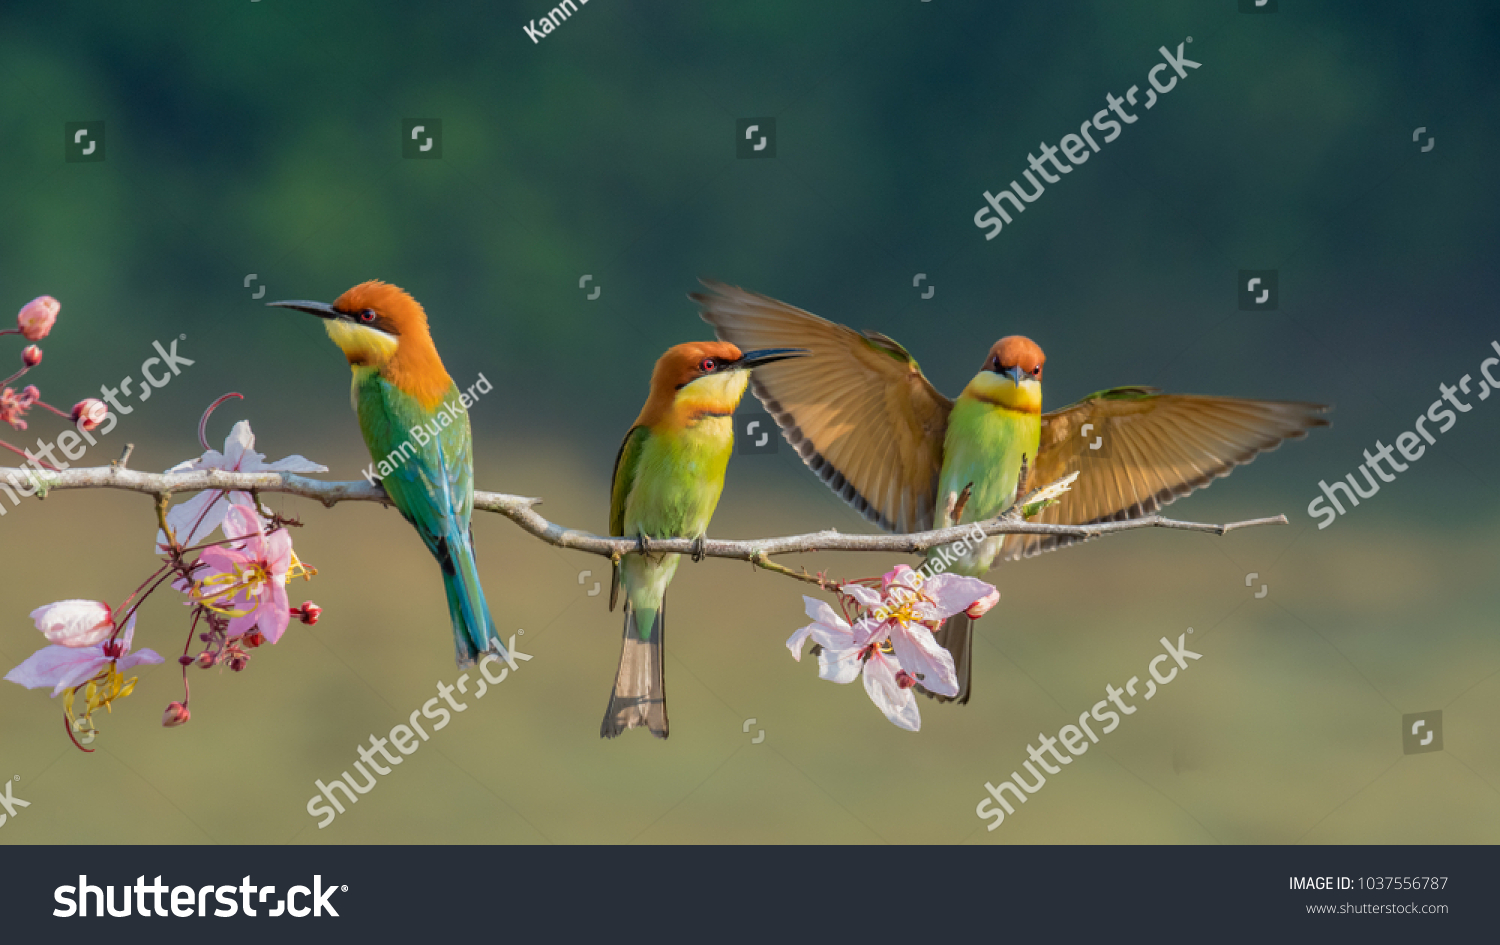 three Chestnut-headed bee-eater on the sticky wood with shallow blurry background one of them spread the wings in high definition, Bee eater, bird , aves with pink flower #1037556787